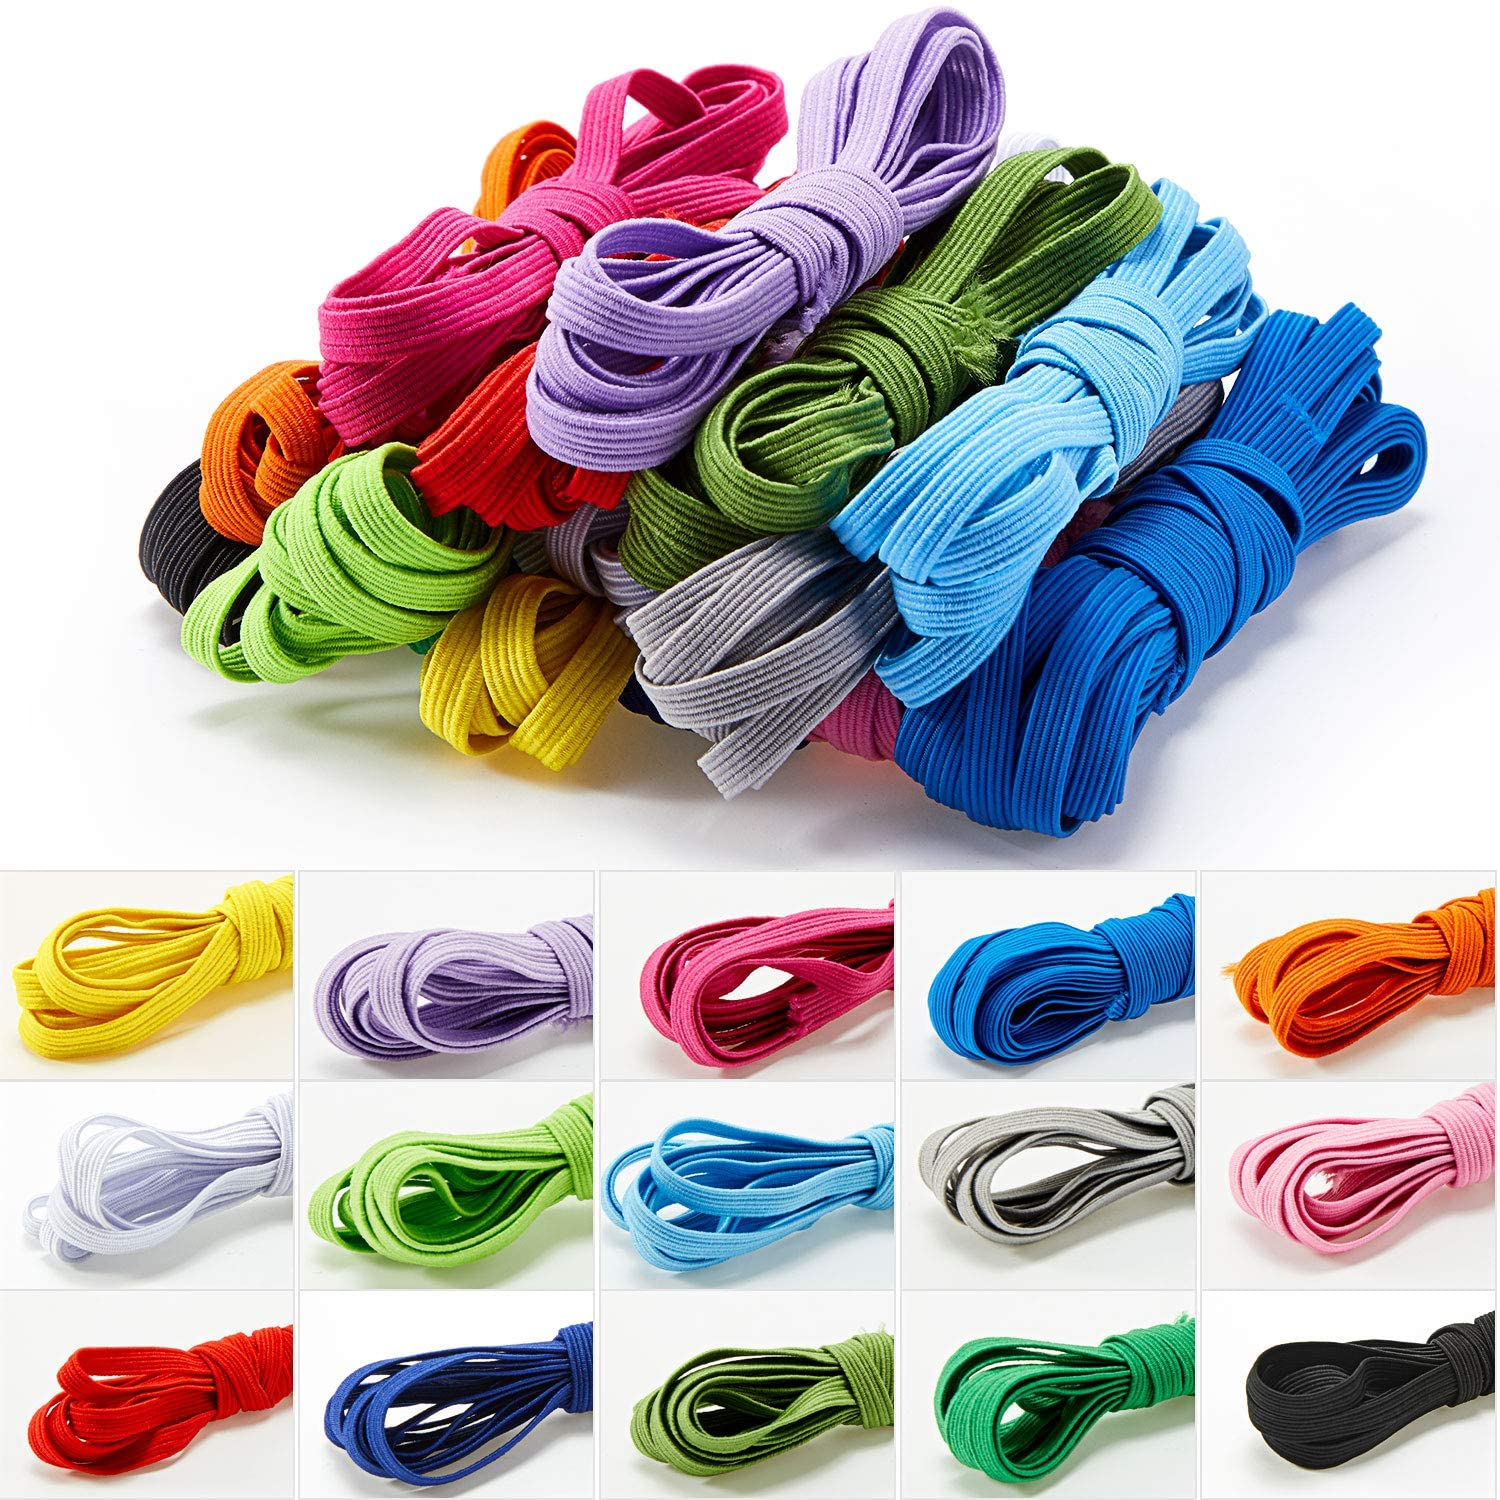 Bloomy 10 Colors Flat Elastic Cord Multicolor Braided Stretch Band Ribbon Bands Craft Rope Cord for Sewing, Making Shoe Laces, Wigs, Bracelets, Crafts DIY Projects, 2 yards in each color  total 20 yards  length (2 m)  lastic for shalwar  Rubber Lastic